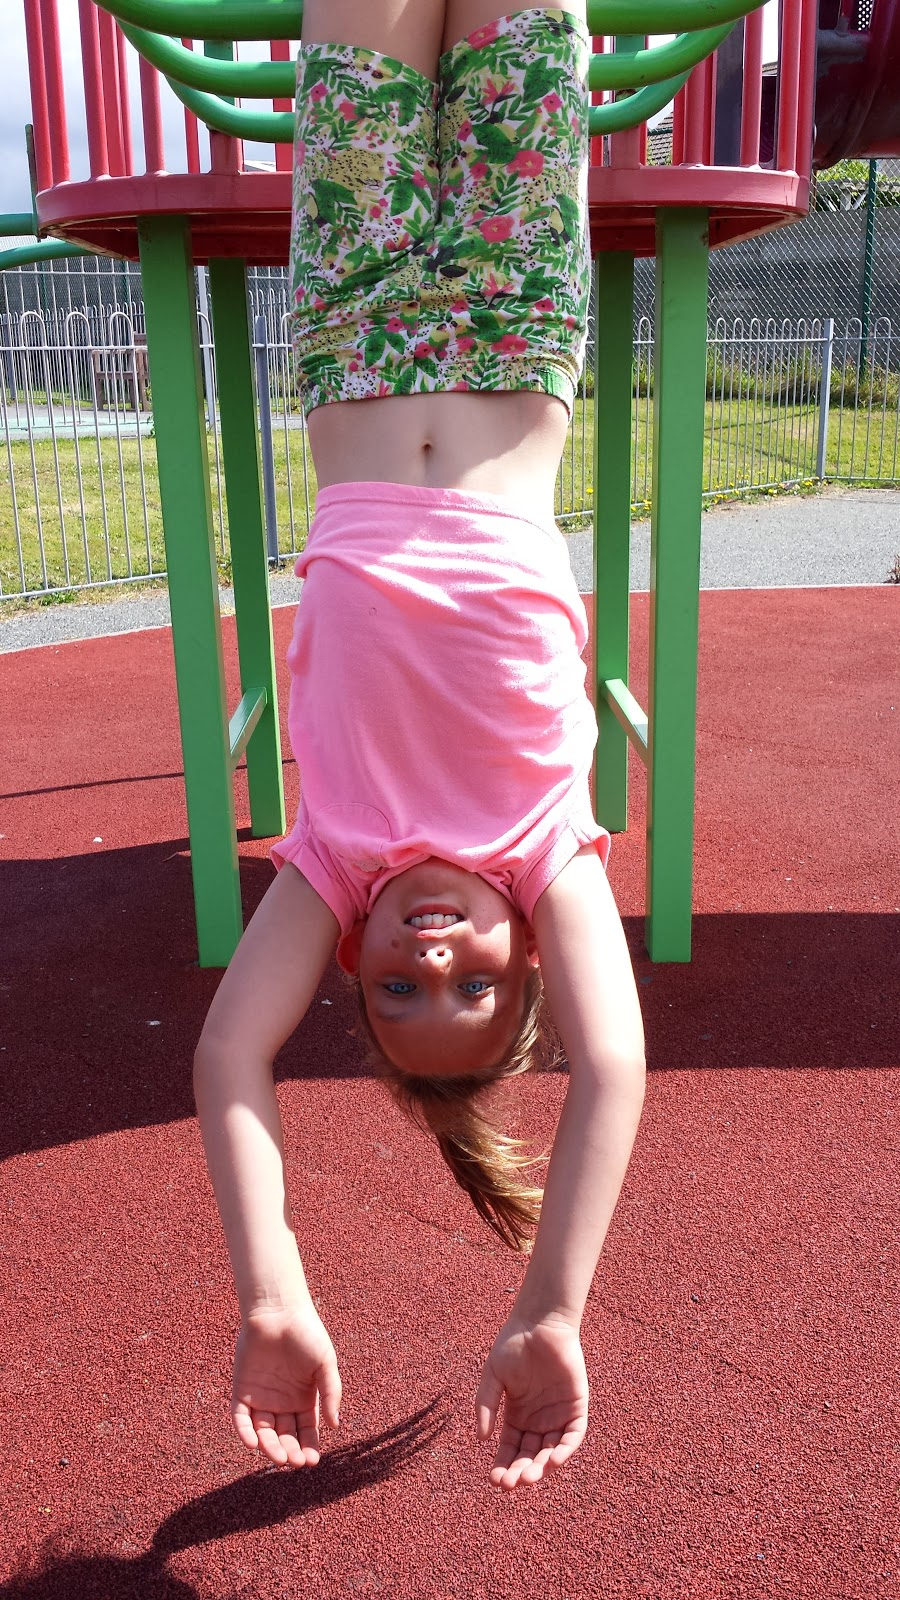 Rebecca hangs upside down park